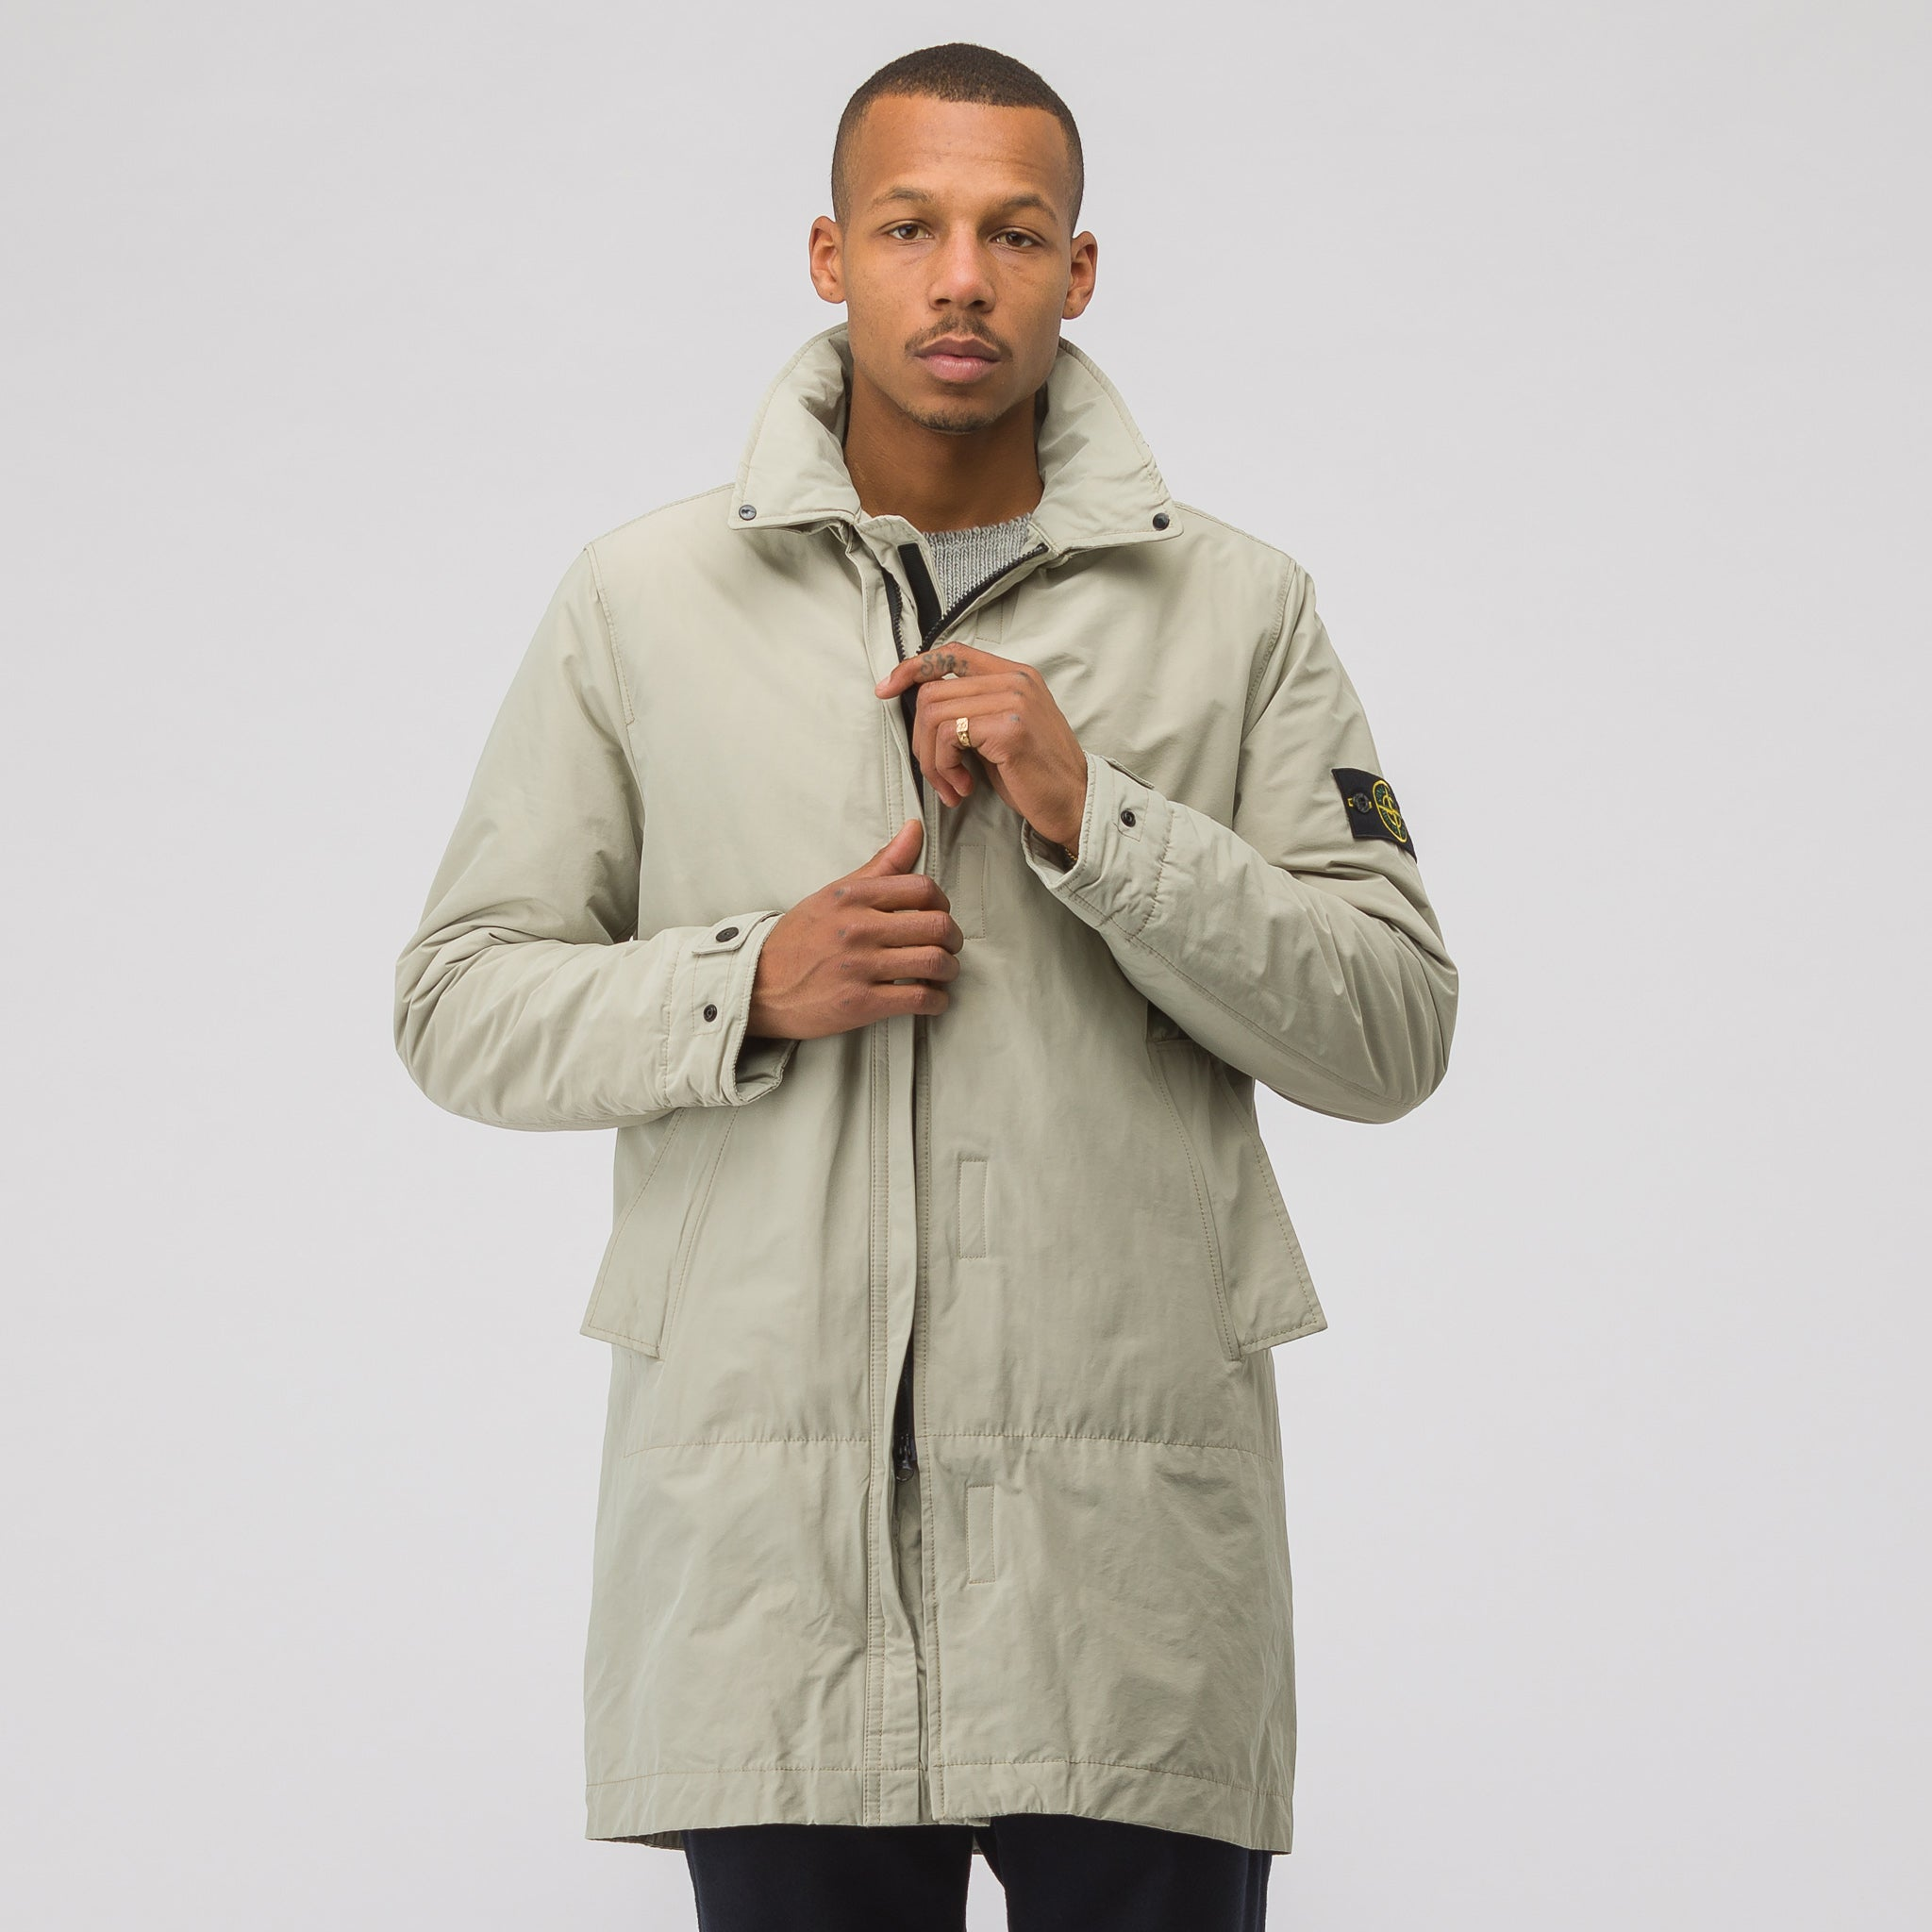 70426 Micro Reps Coat with Primaloft in Beige